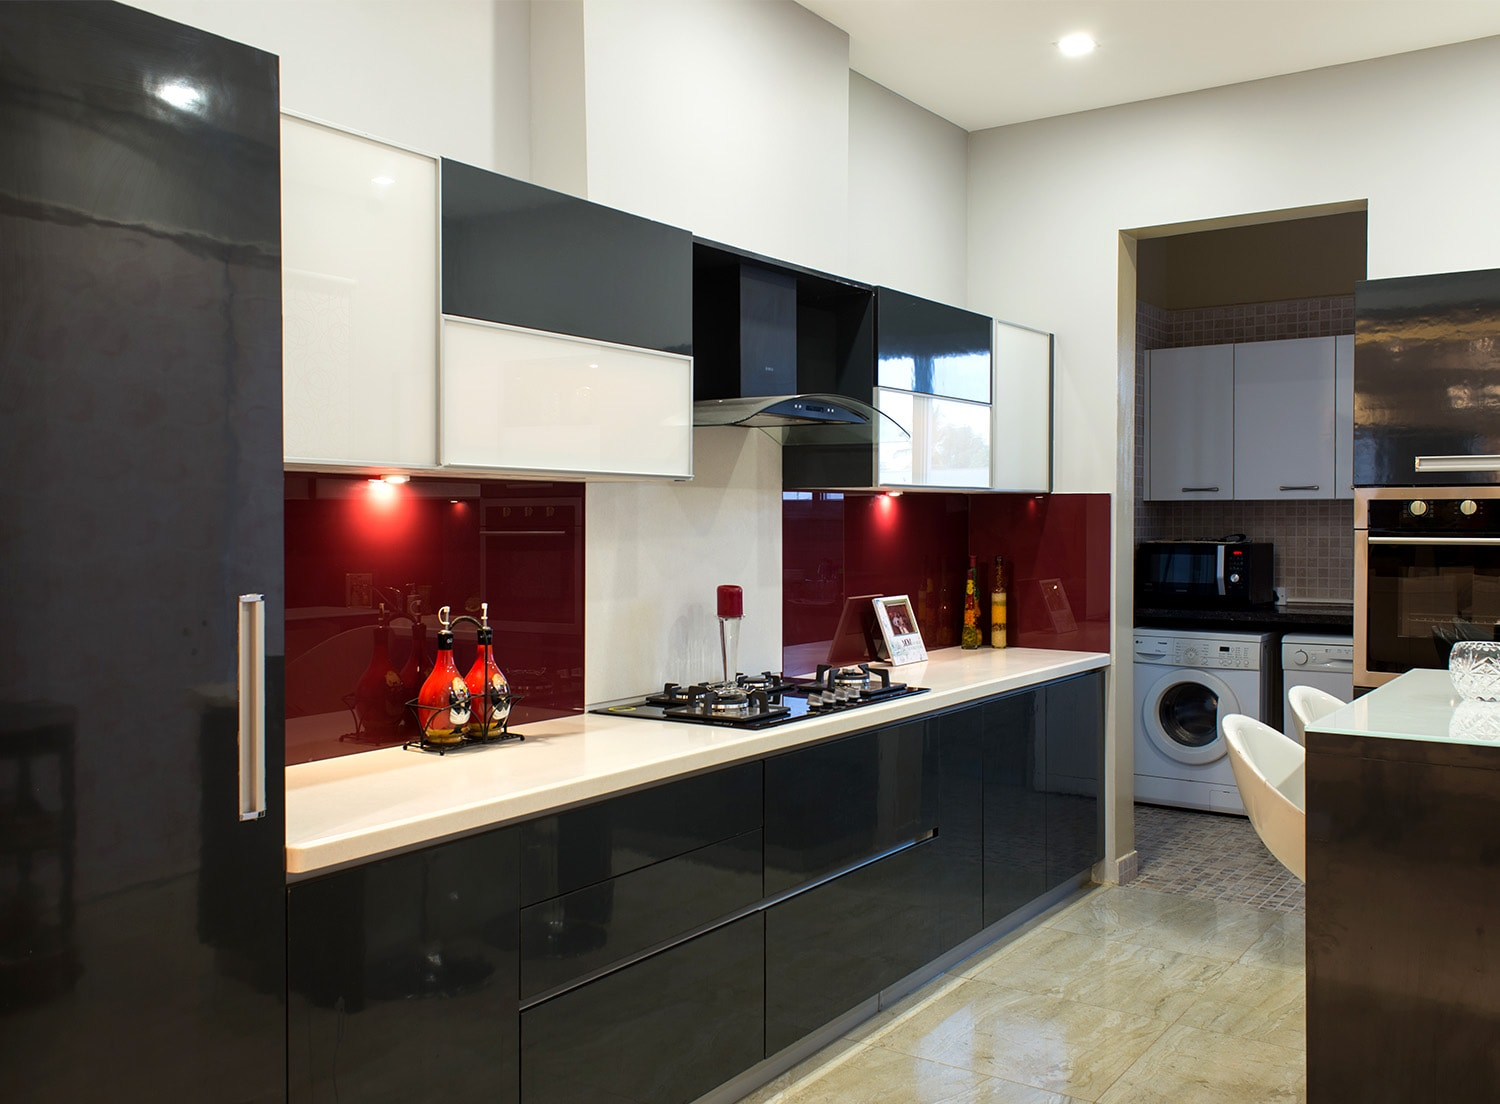 Kitchen Design Bangalore home interiorshomelane - modular kitchens, wardrobes, storage